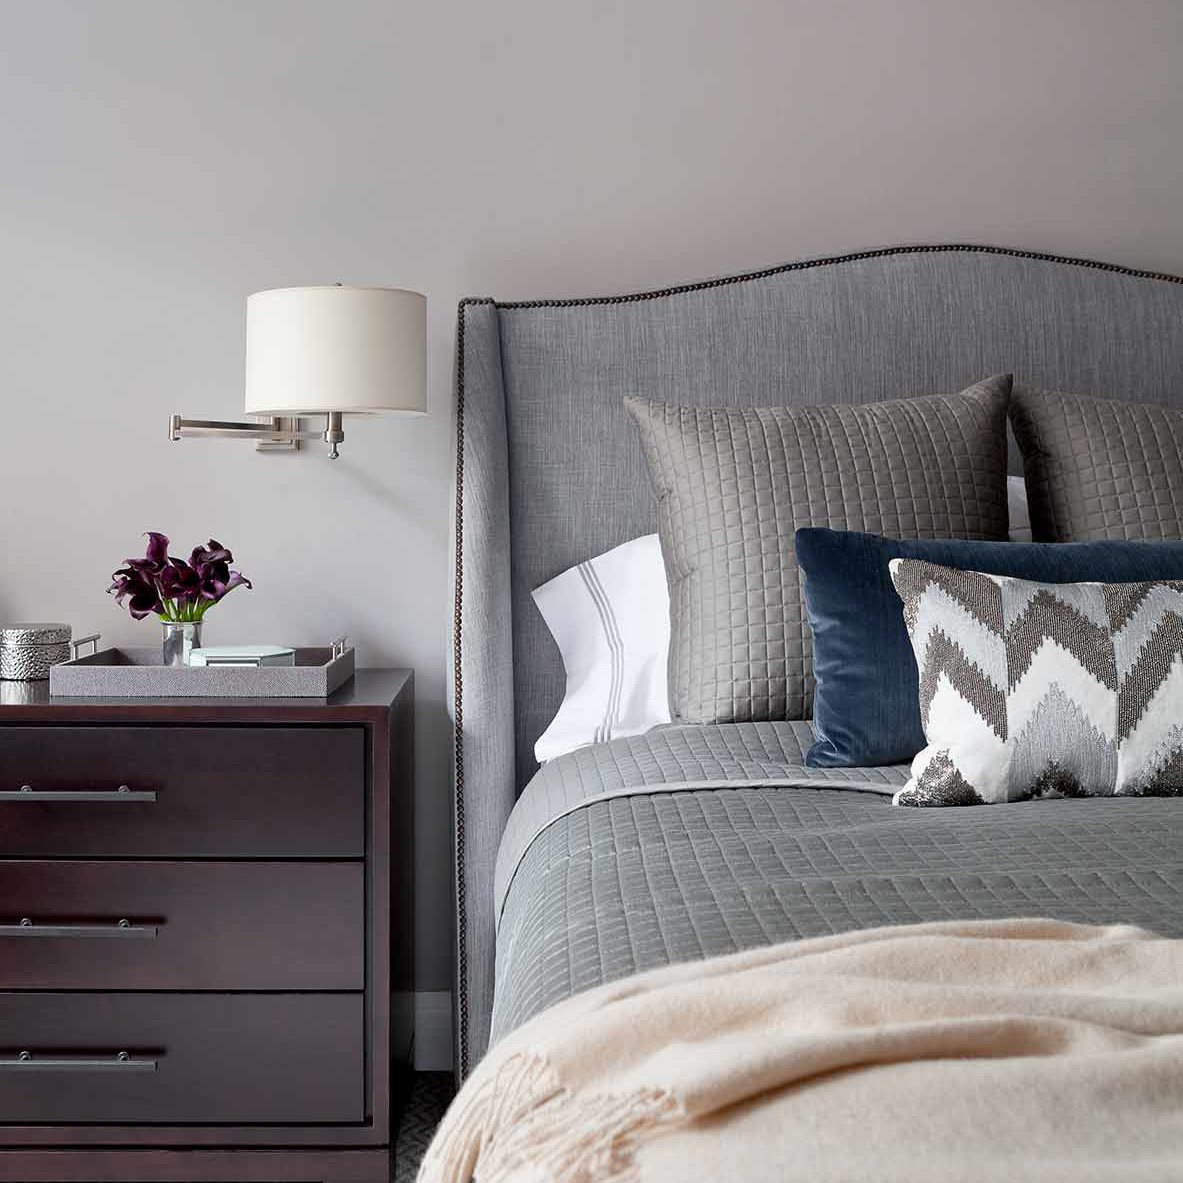 NYC apartment bedroom interior design with upholstered headboard, wall mounted sconces and storage drawers